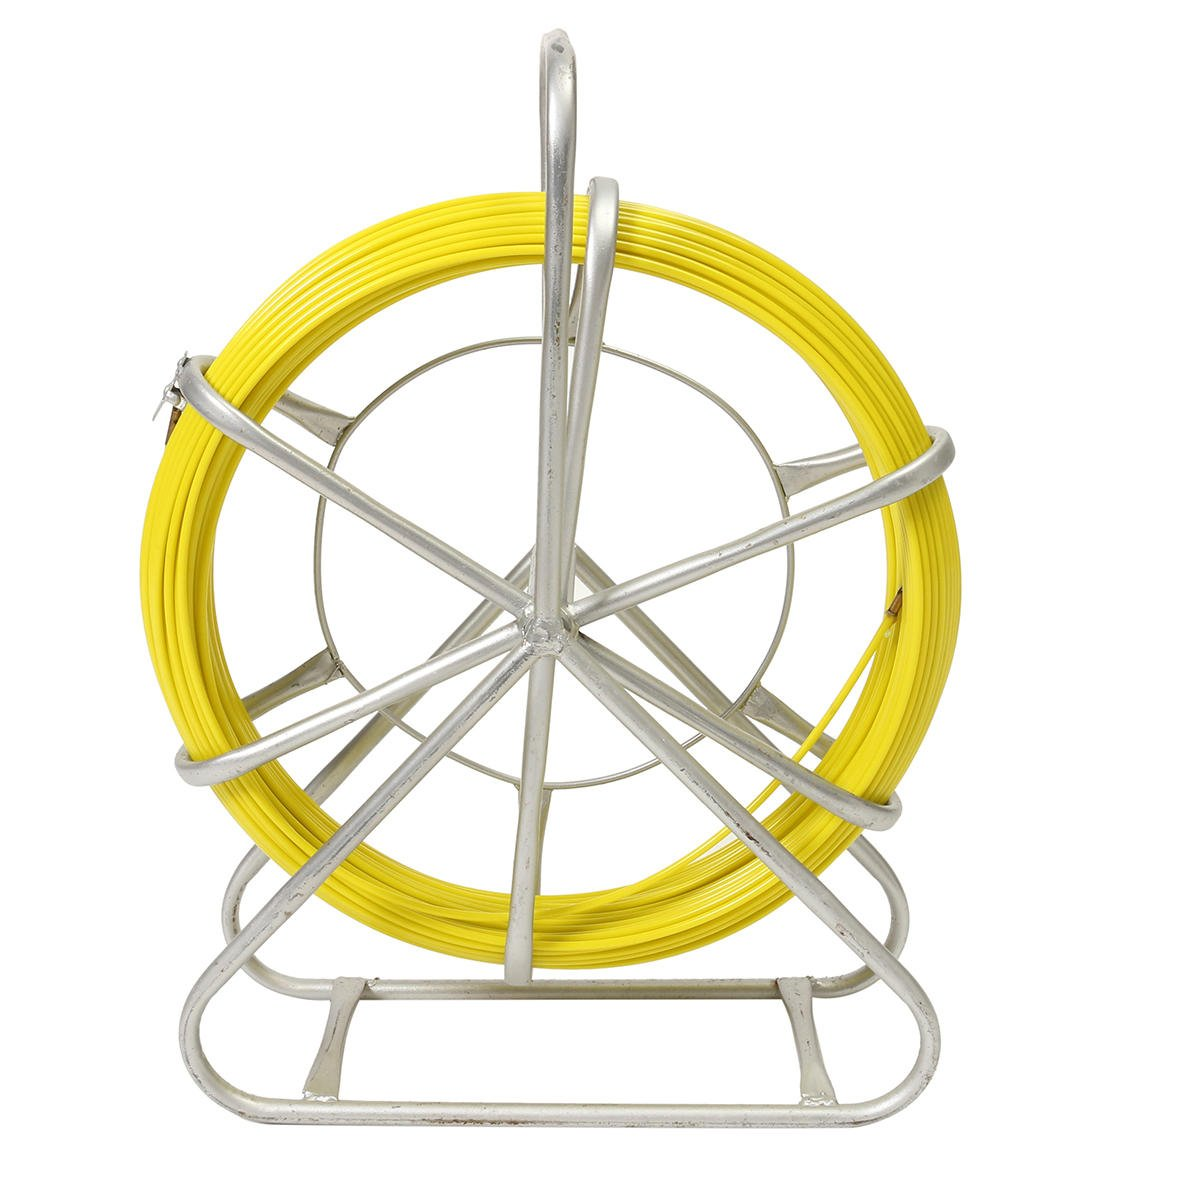 Fish Wire Tape Fiberglass Duct Rodder Fish Tape Continuous Fiberglass Cable Puller 4.5mm x 70 mst